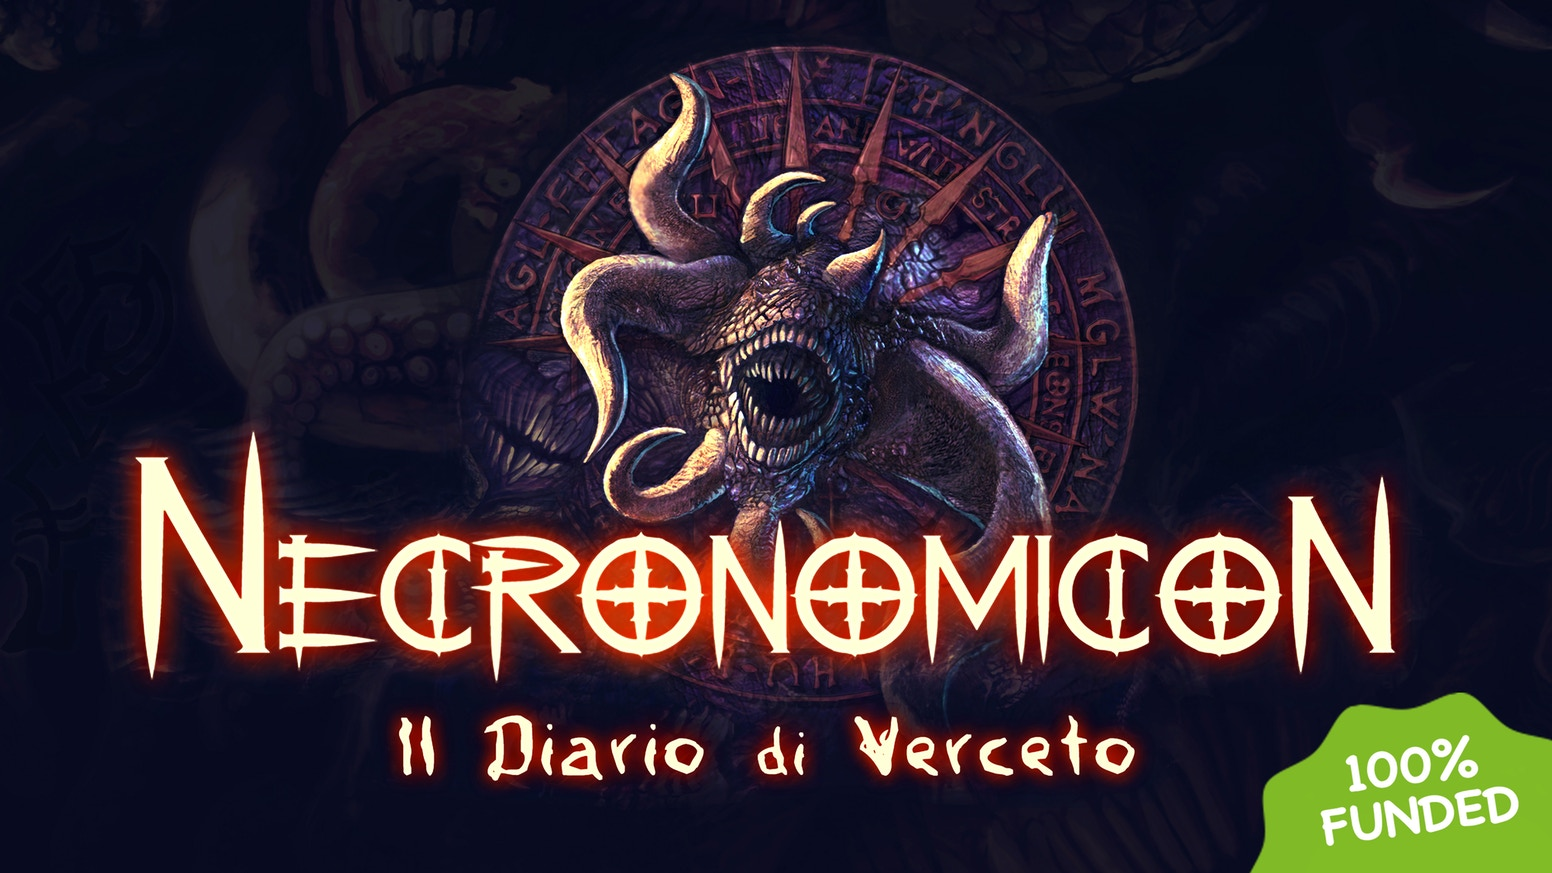 The Artbook of Abdul Alhazred's Necronomicon